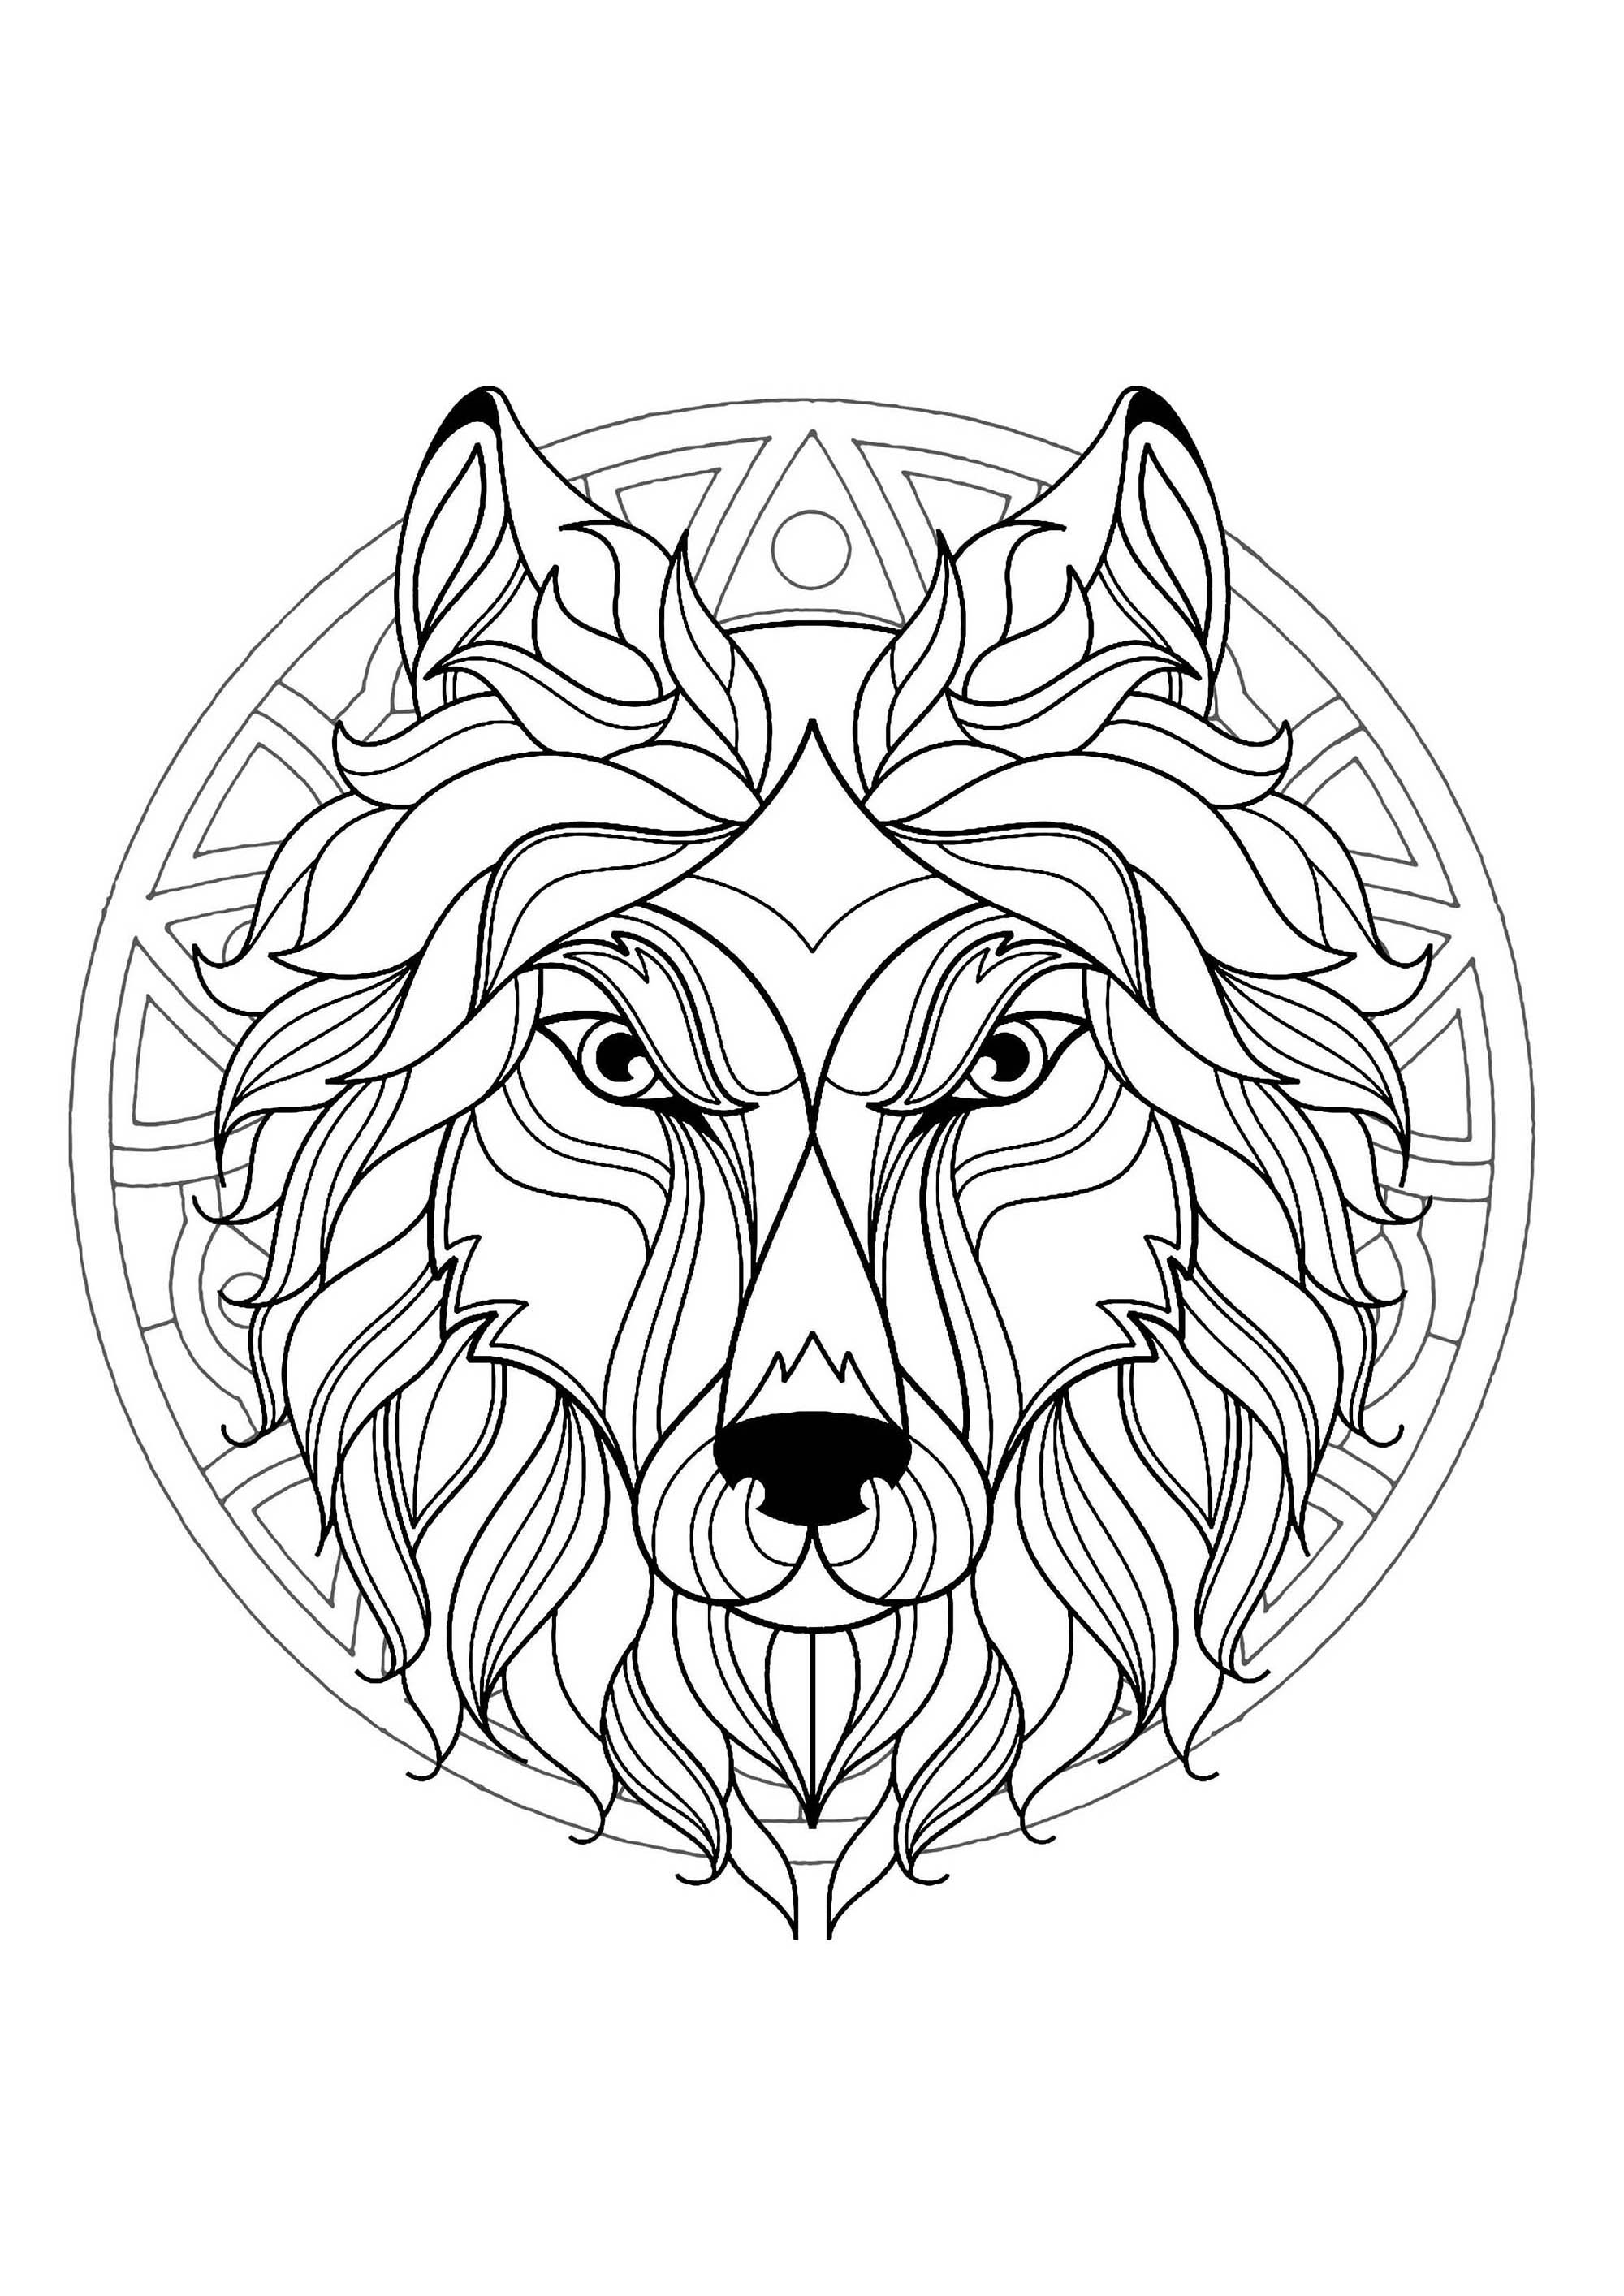 complex mandala coloring page with wolf head 3 difficult mandalas for adults 100 mandalas. Black Bedroom Furniture Sets. Home Design Ideas